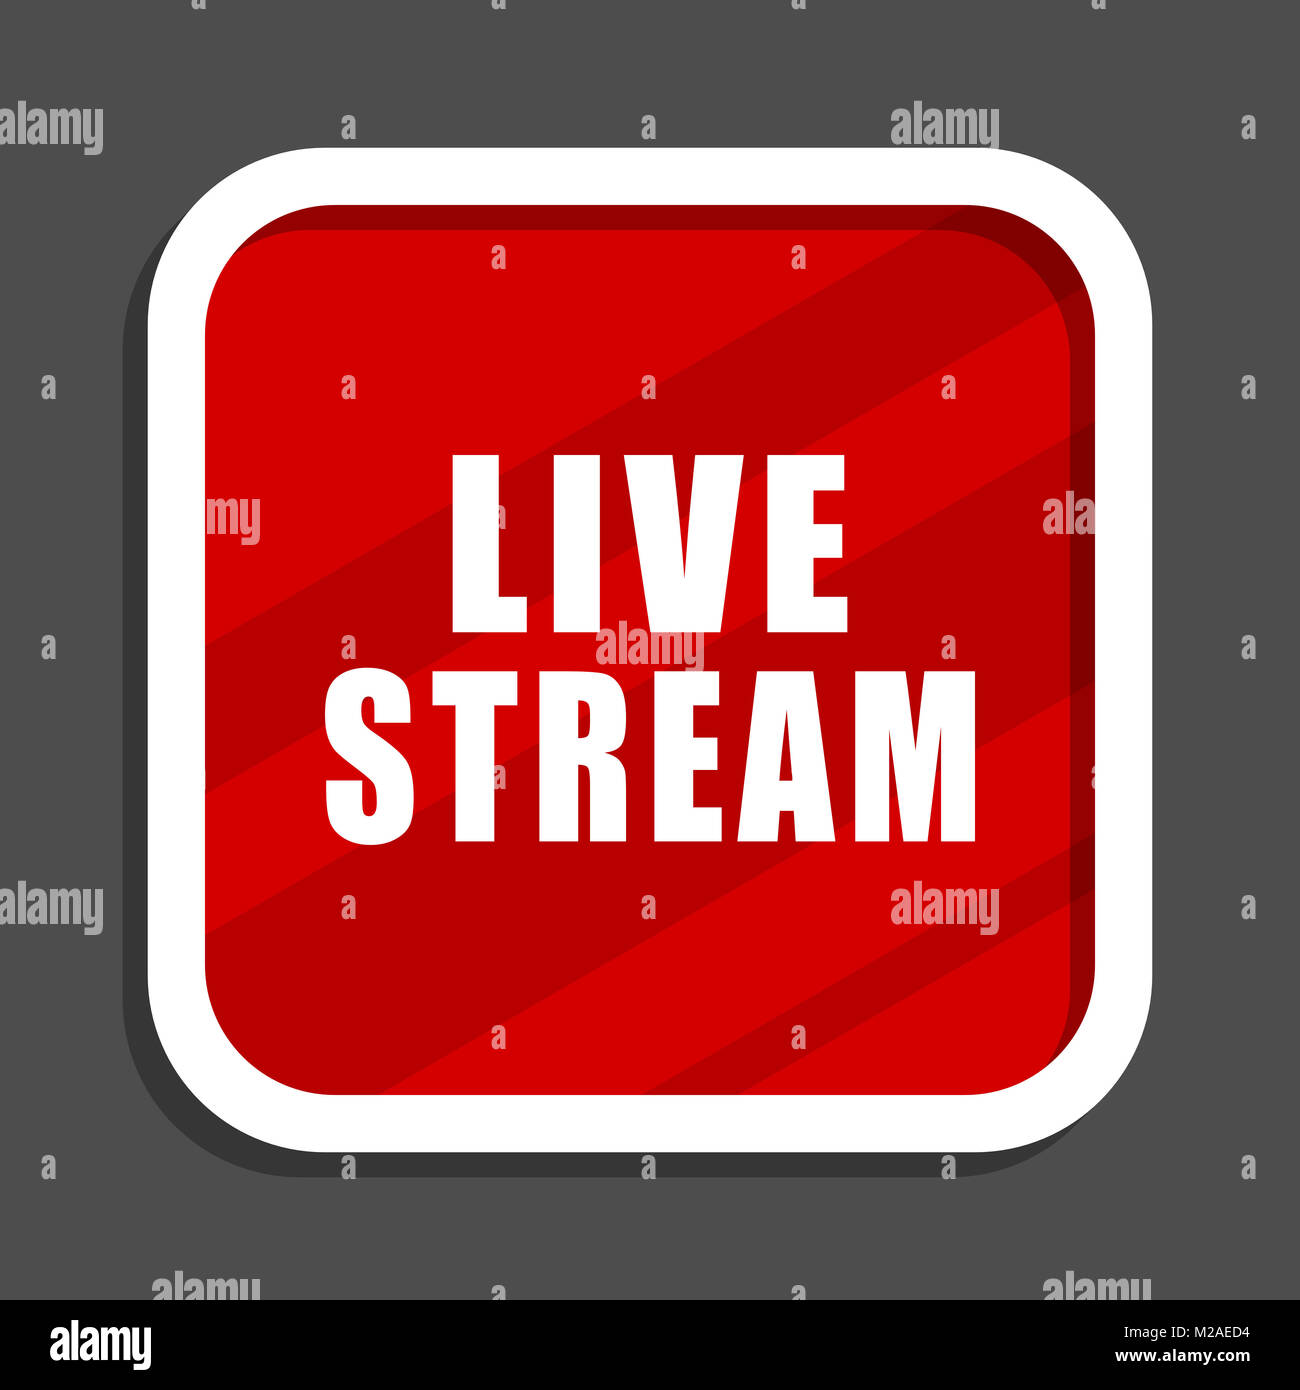 Live stream icon. Flat design square internet banner. - Stock Image